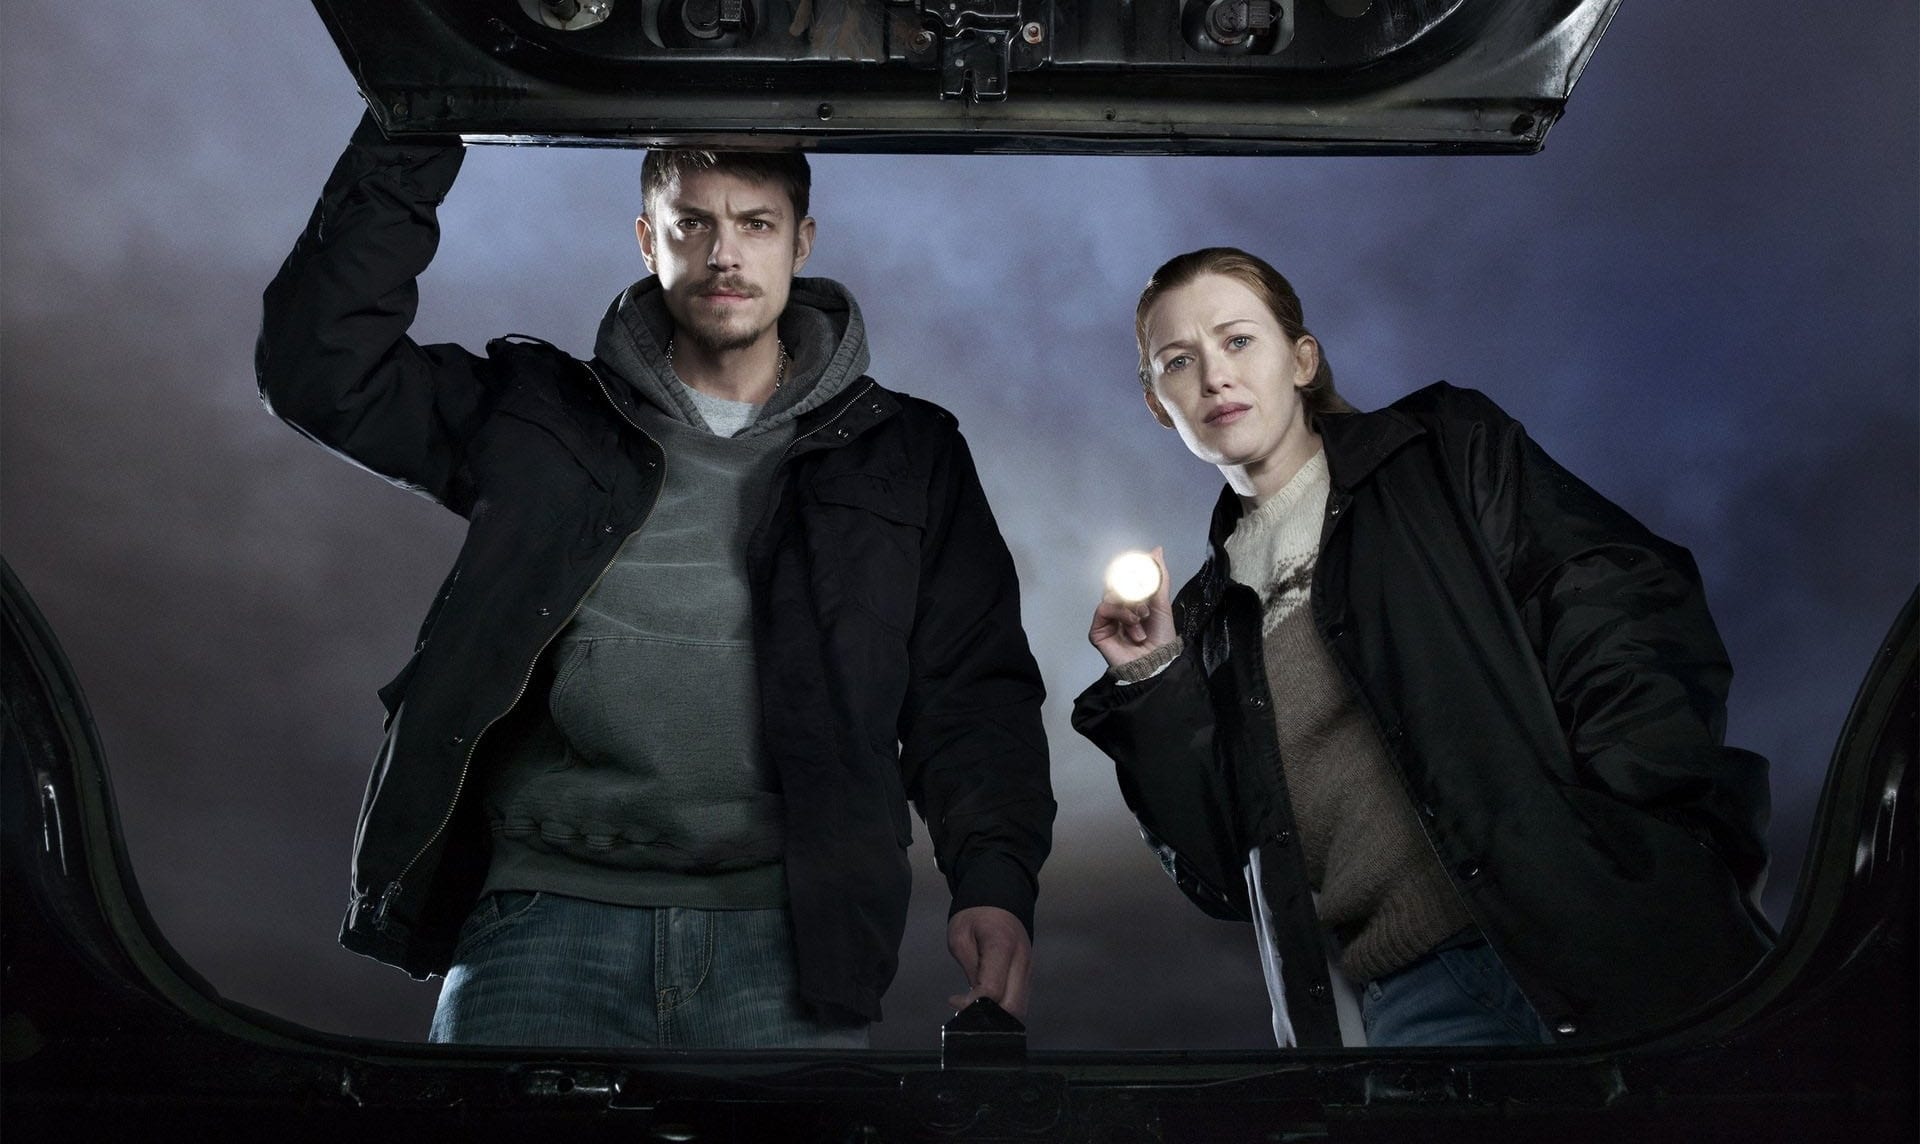 Until 'Wisting' is available outside Norway, get your Scandi noir fix with these shows, all of which are available to stream right now.